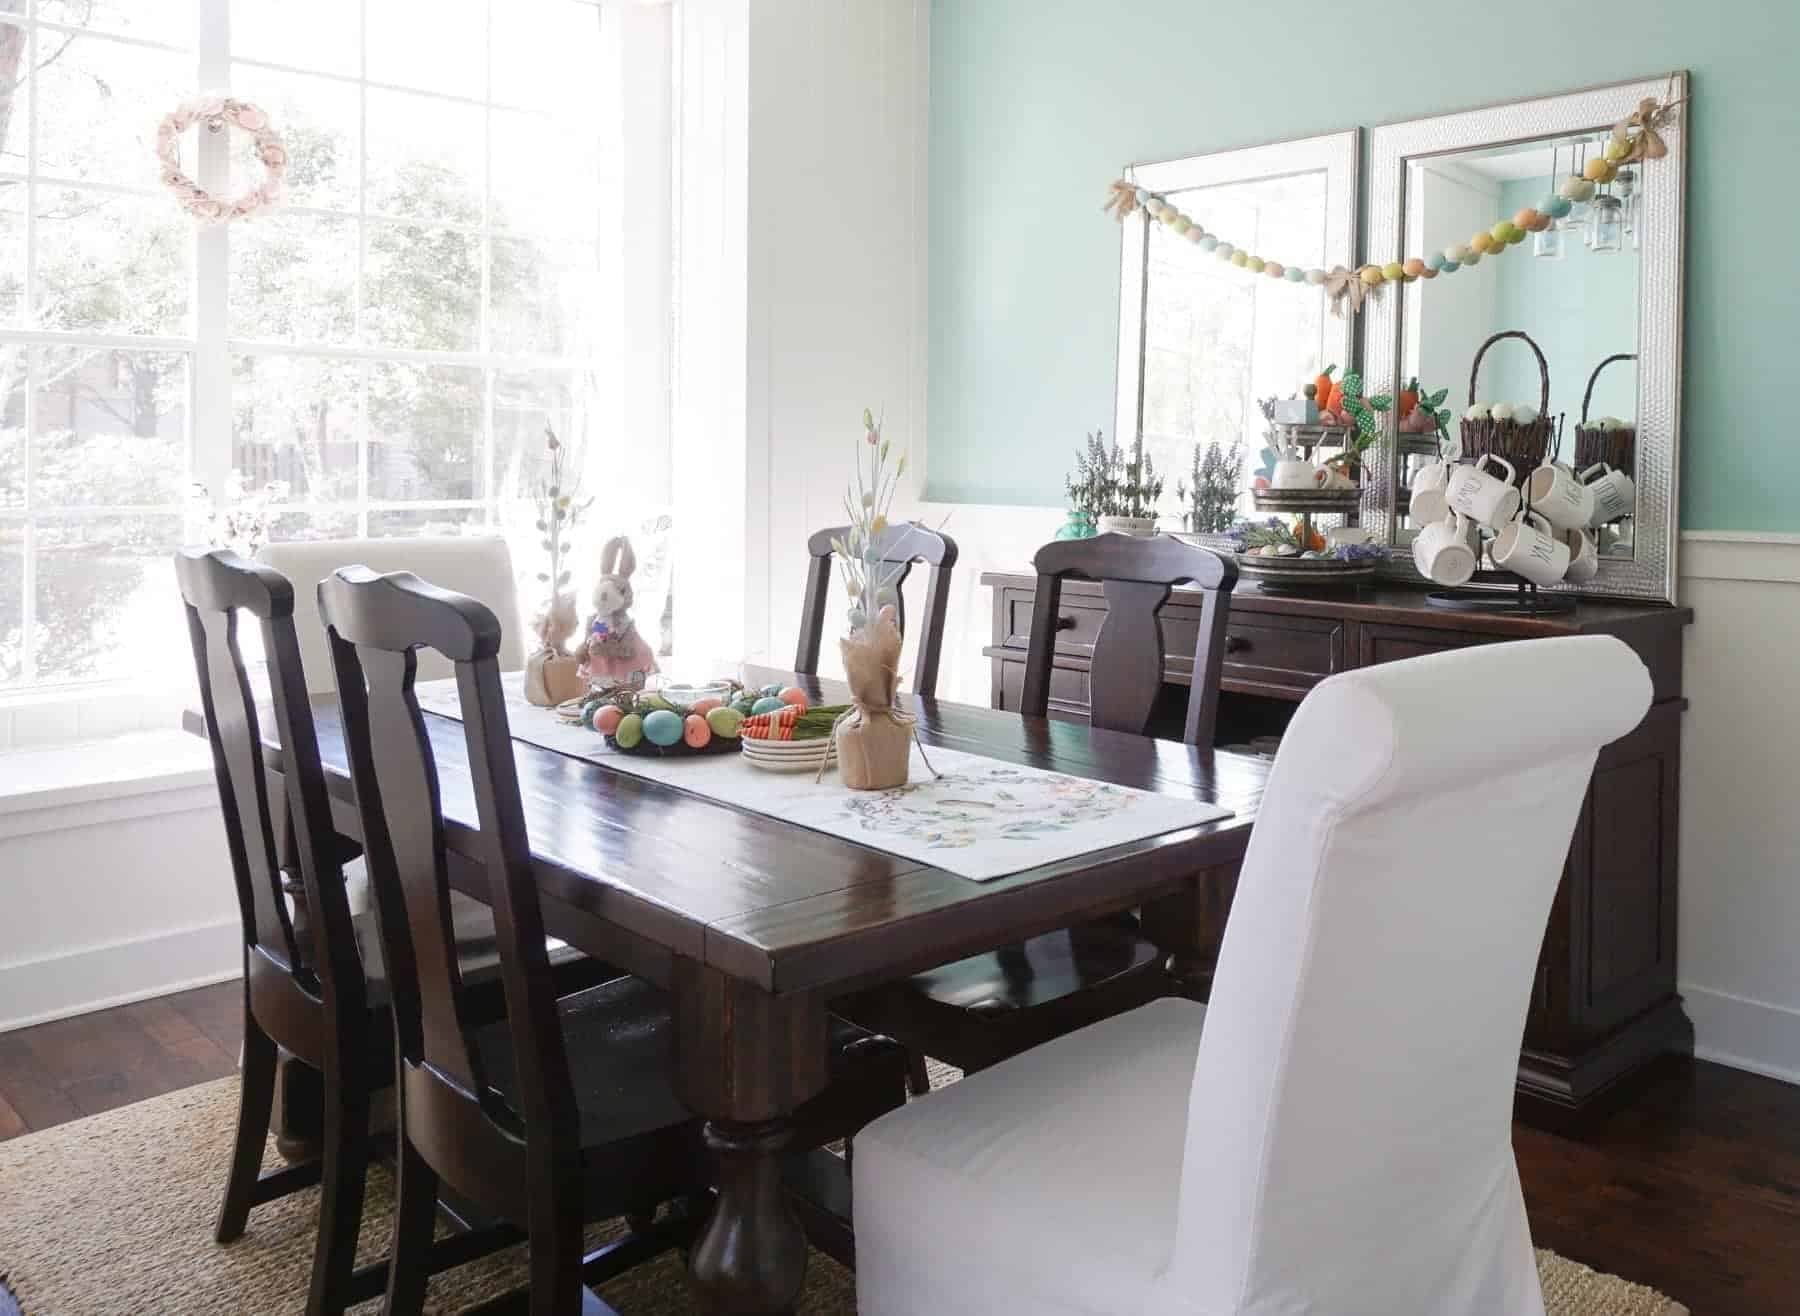 Decorating a Dining Room for Spring